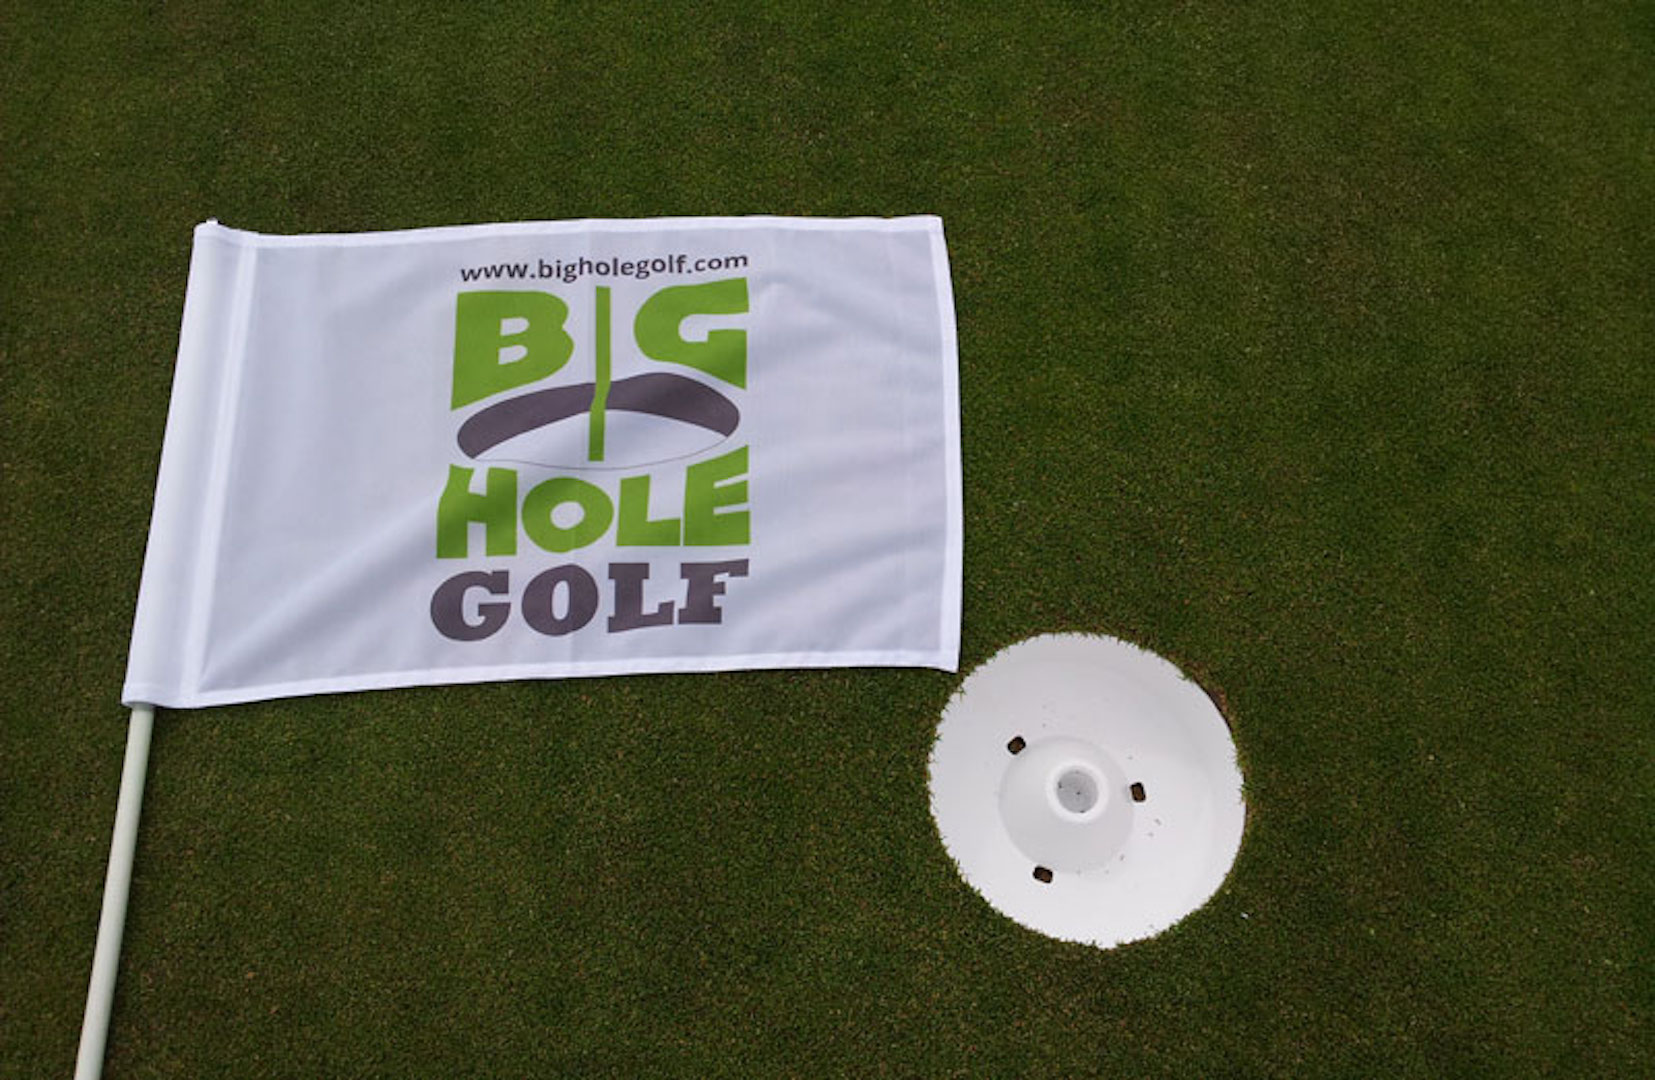 What is Big HOLE Golf?